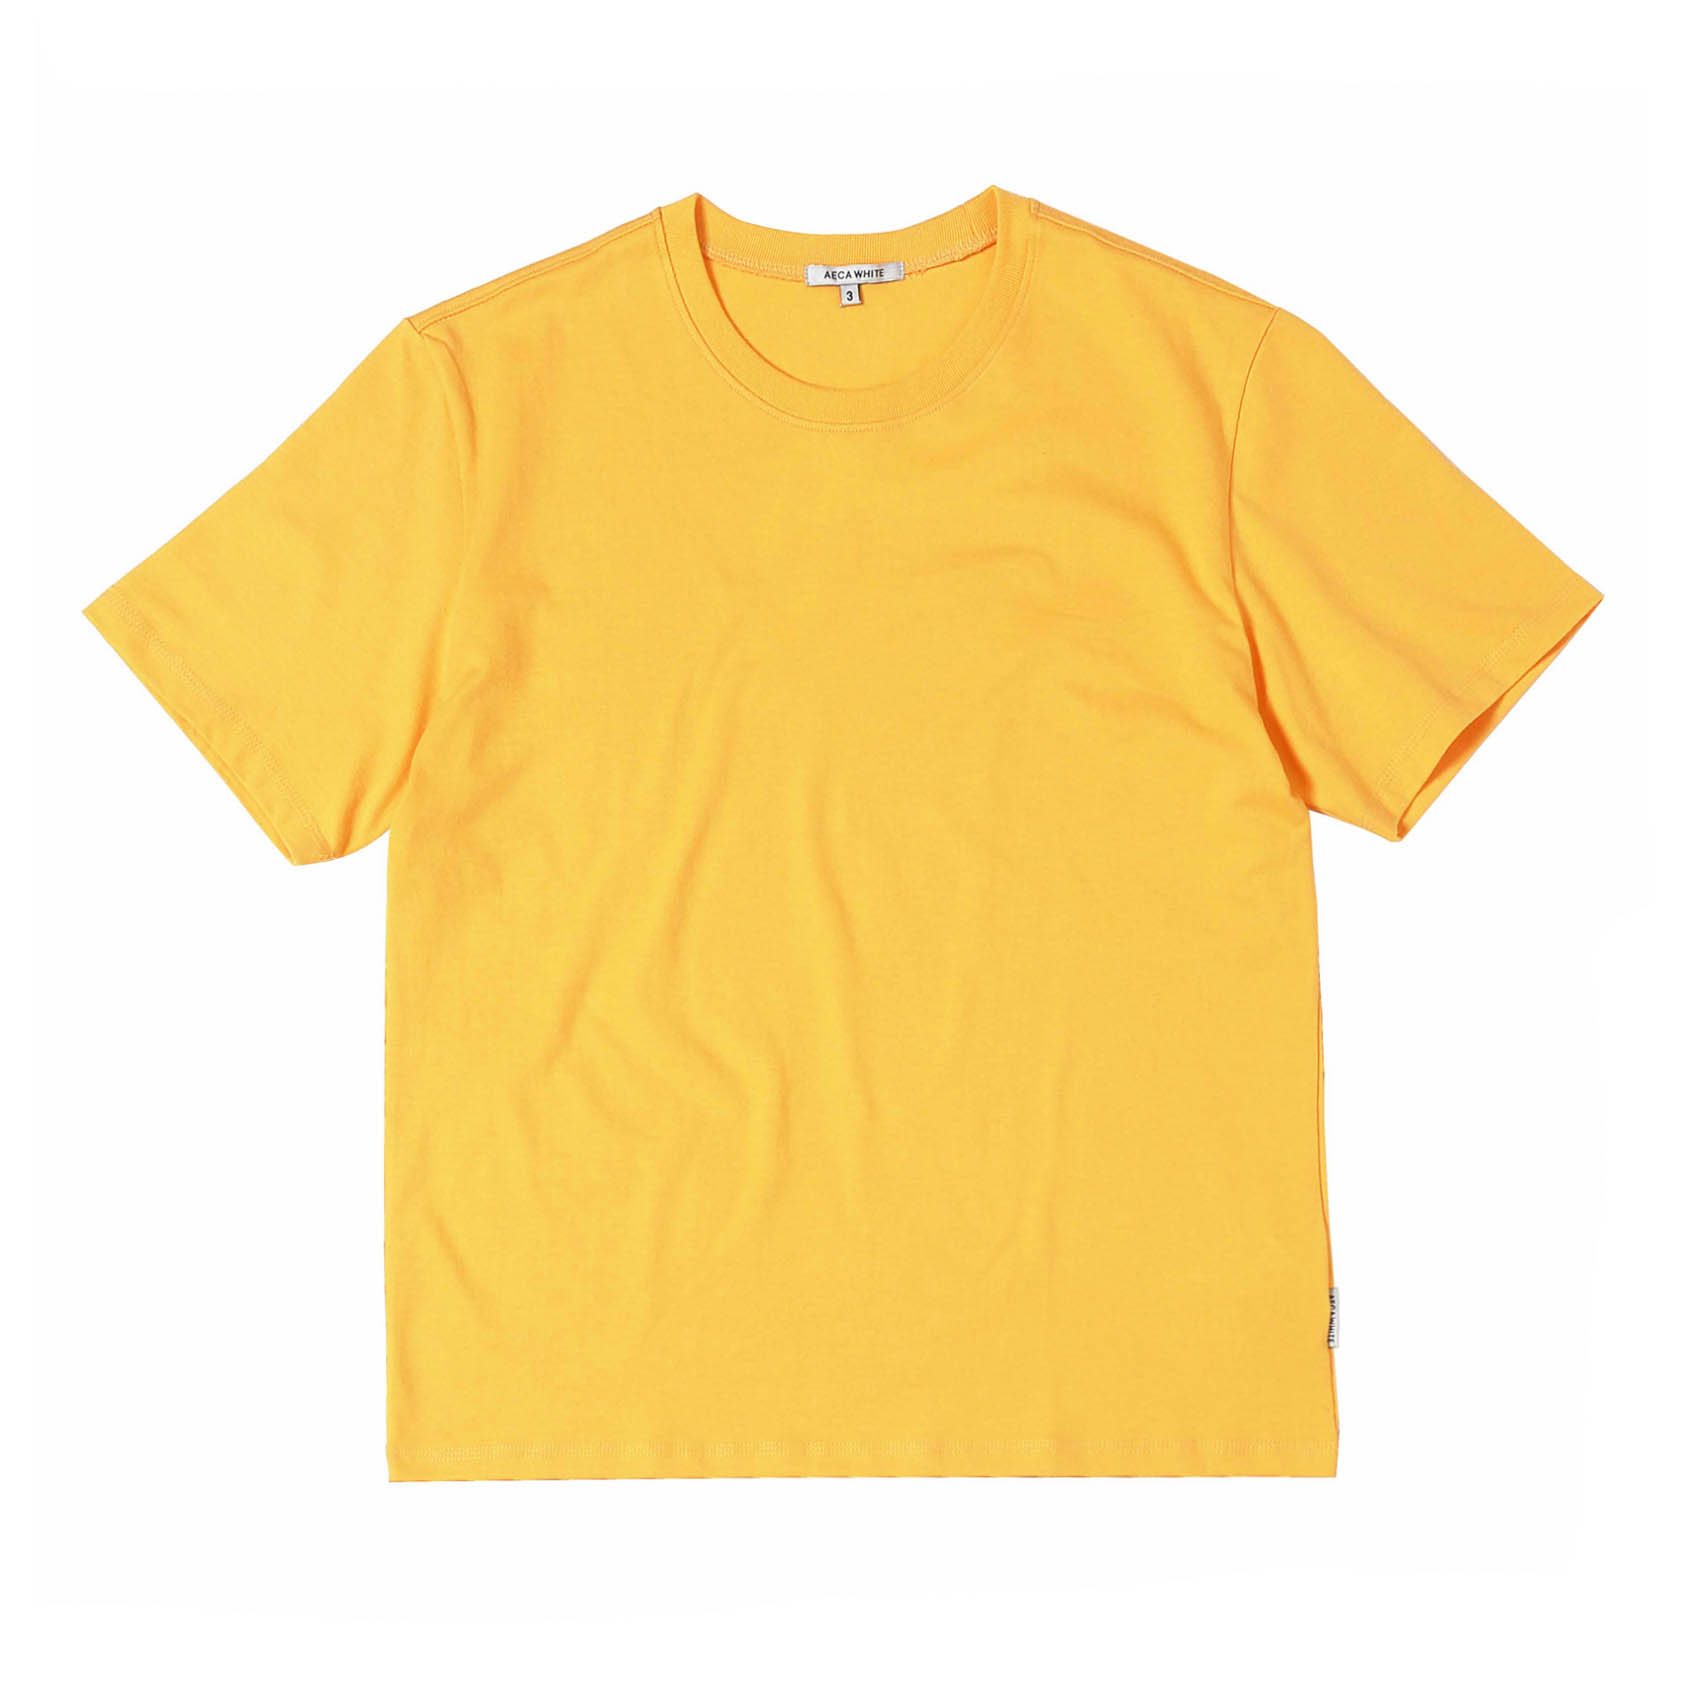 FINEST COTTON HALF SLEEVE TEE - YELLOW